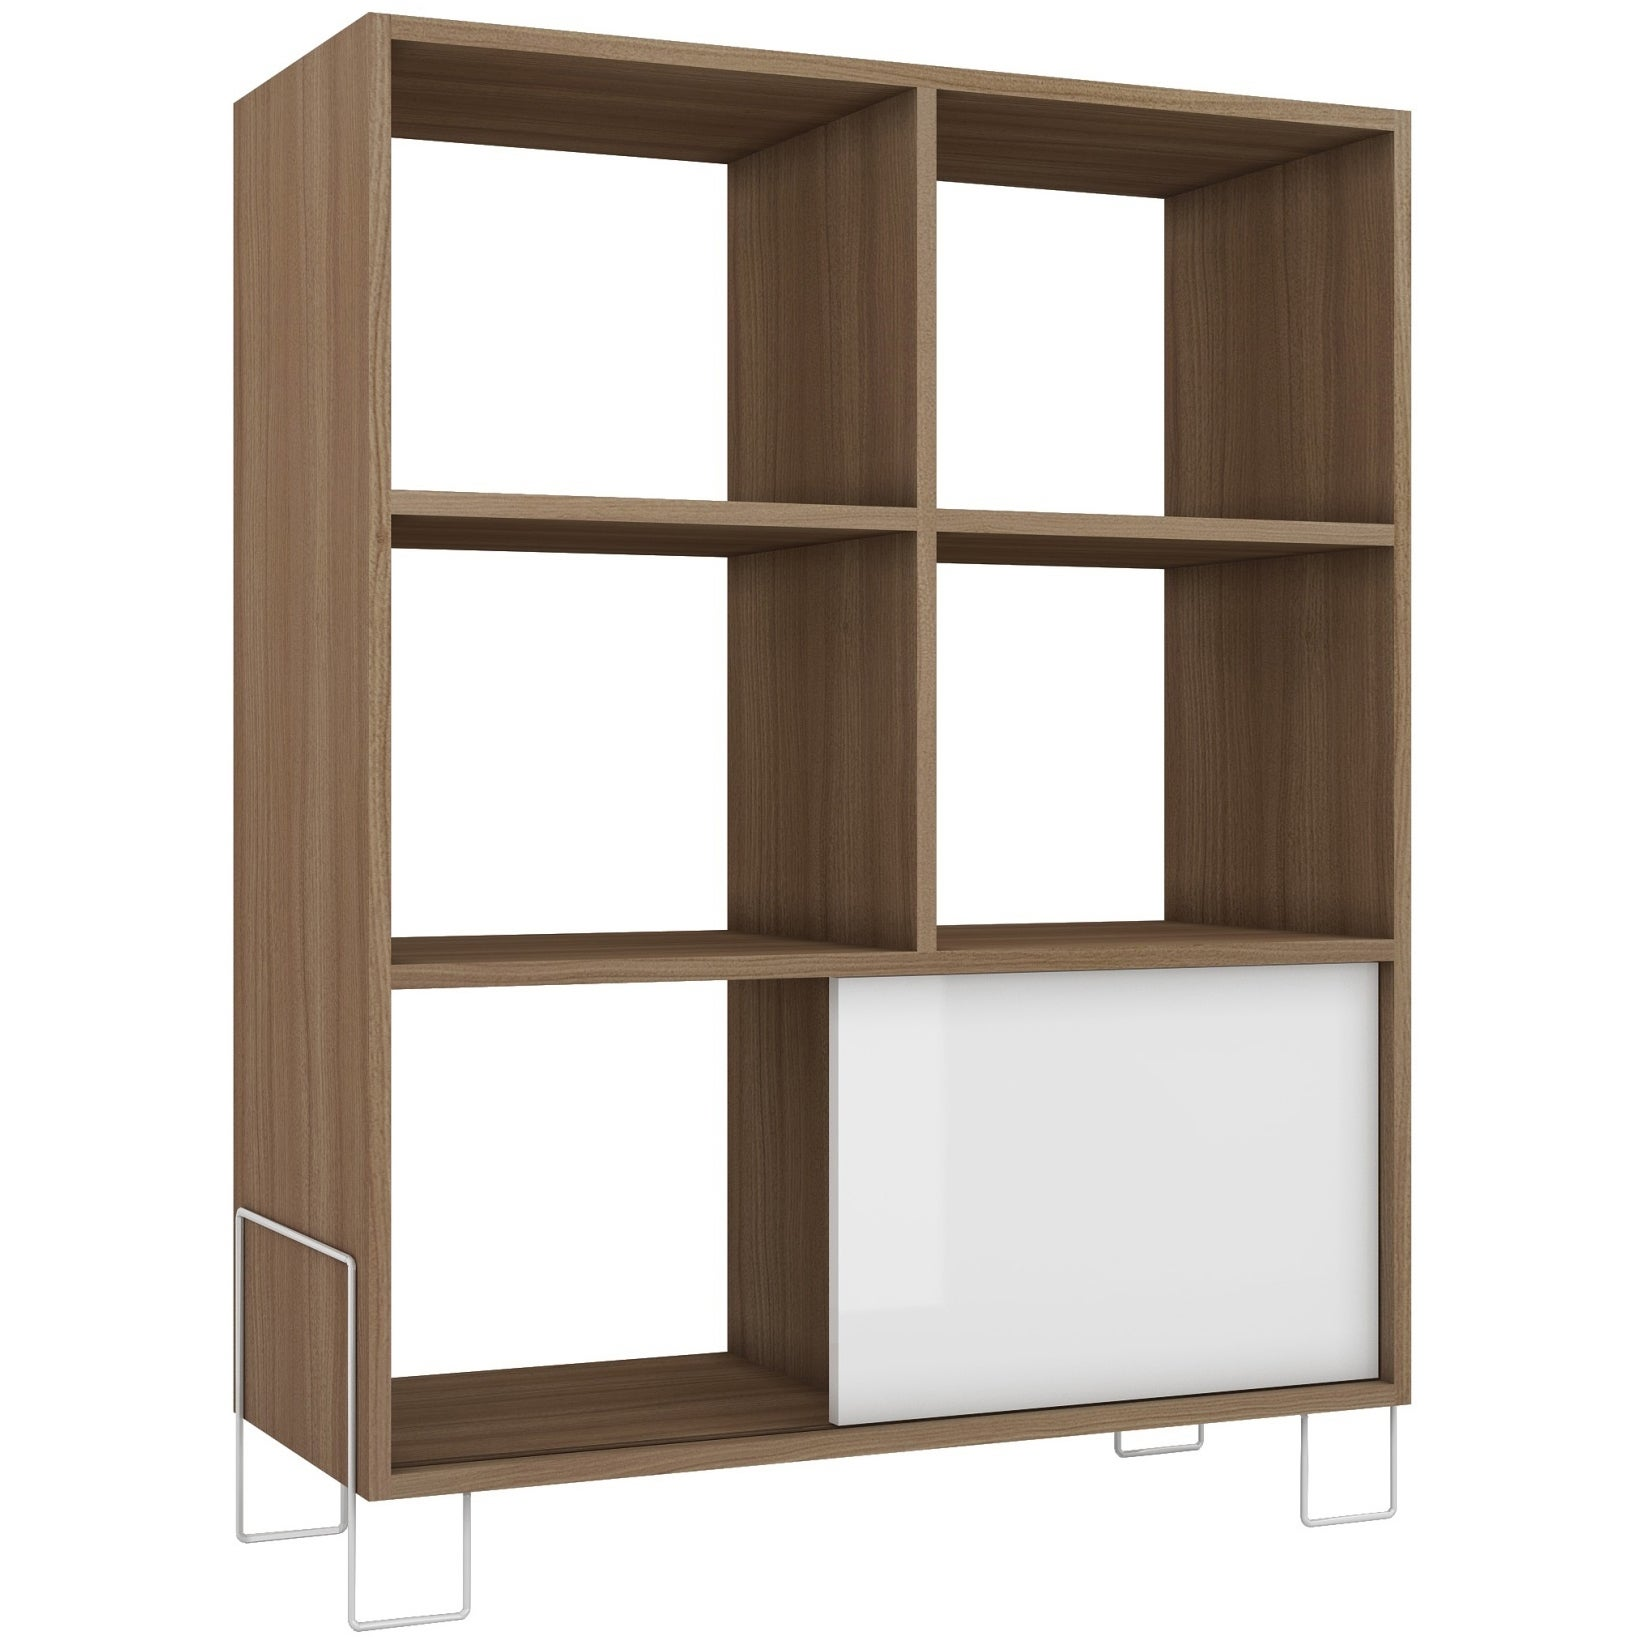 shelf bookshelf wide furniture with black cabinet bookcase tall drawers white simple ladder low slim long